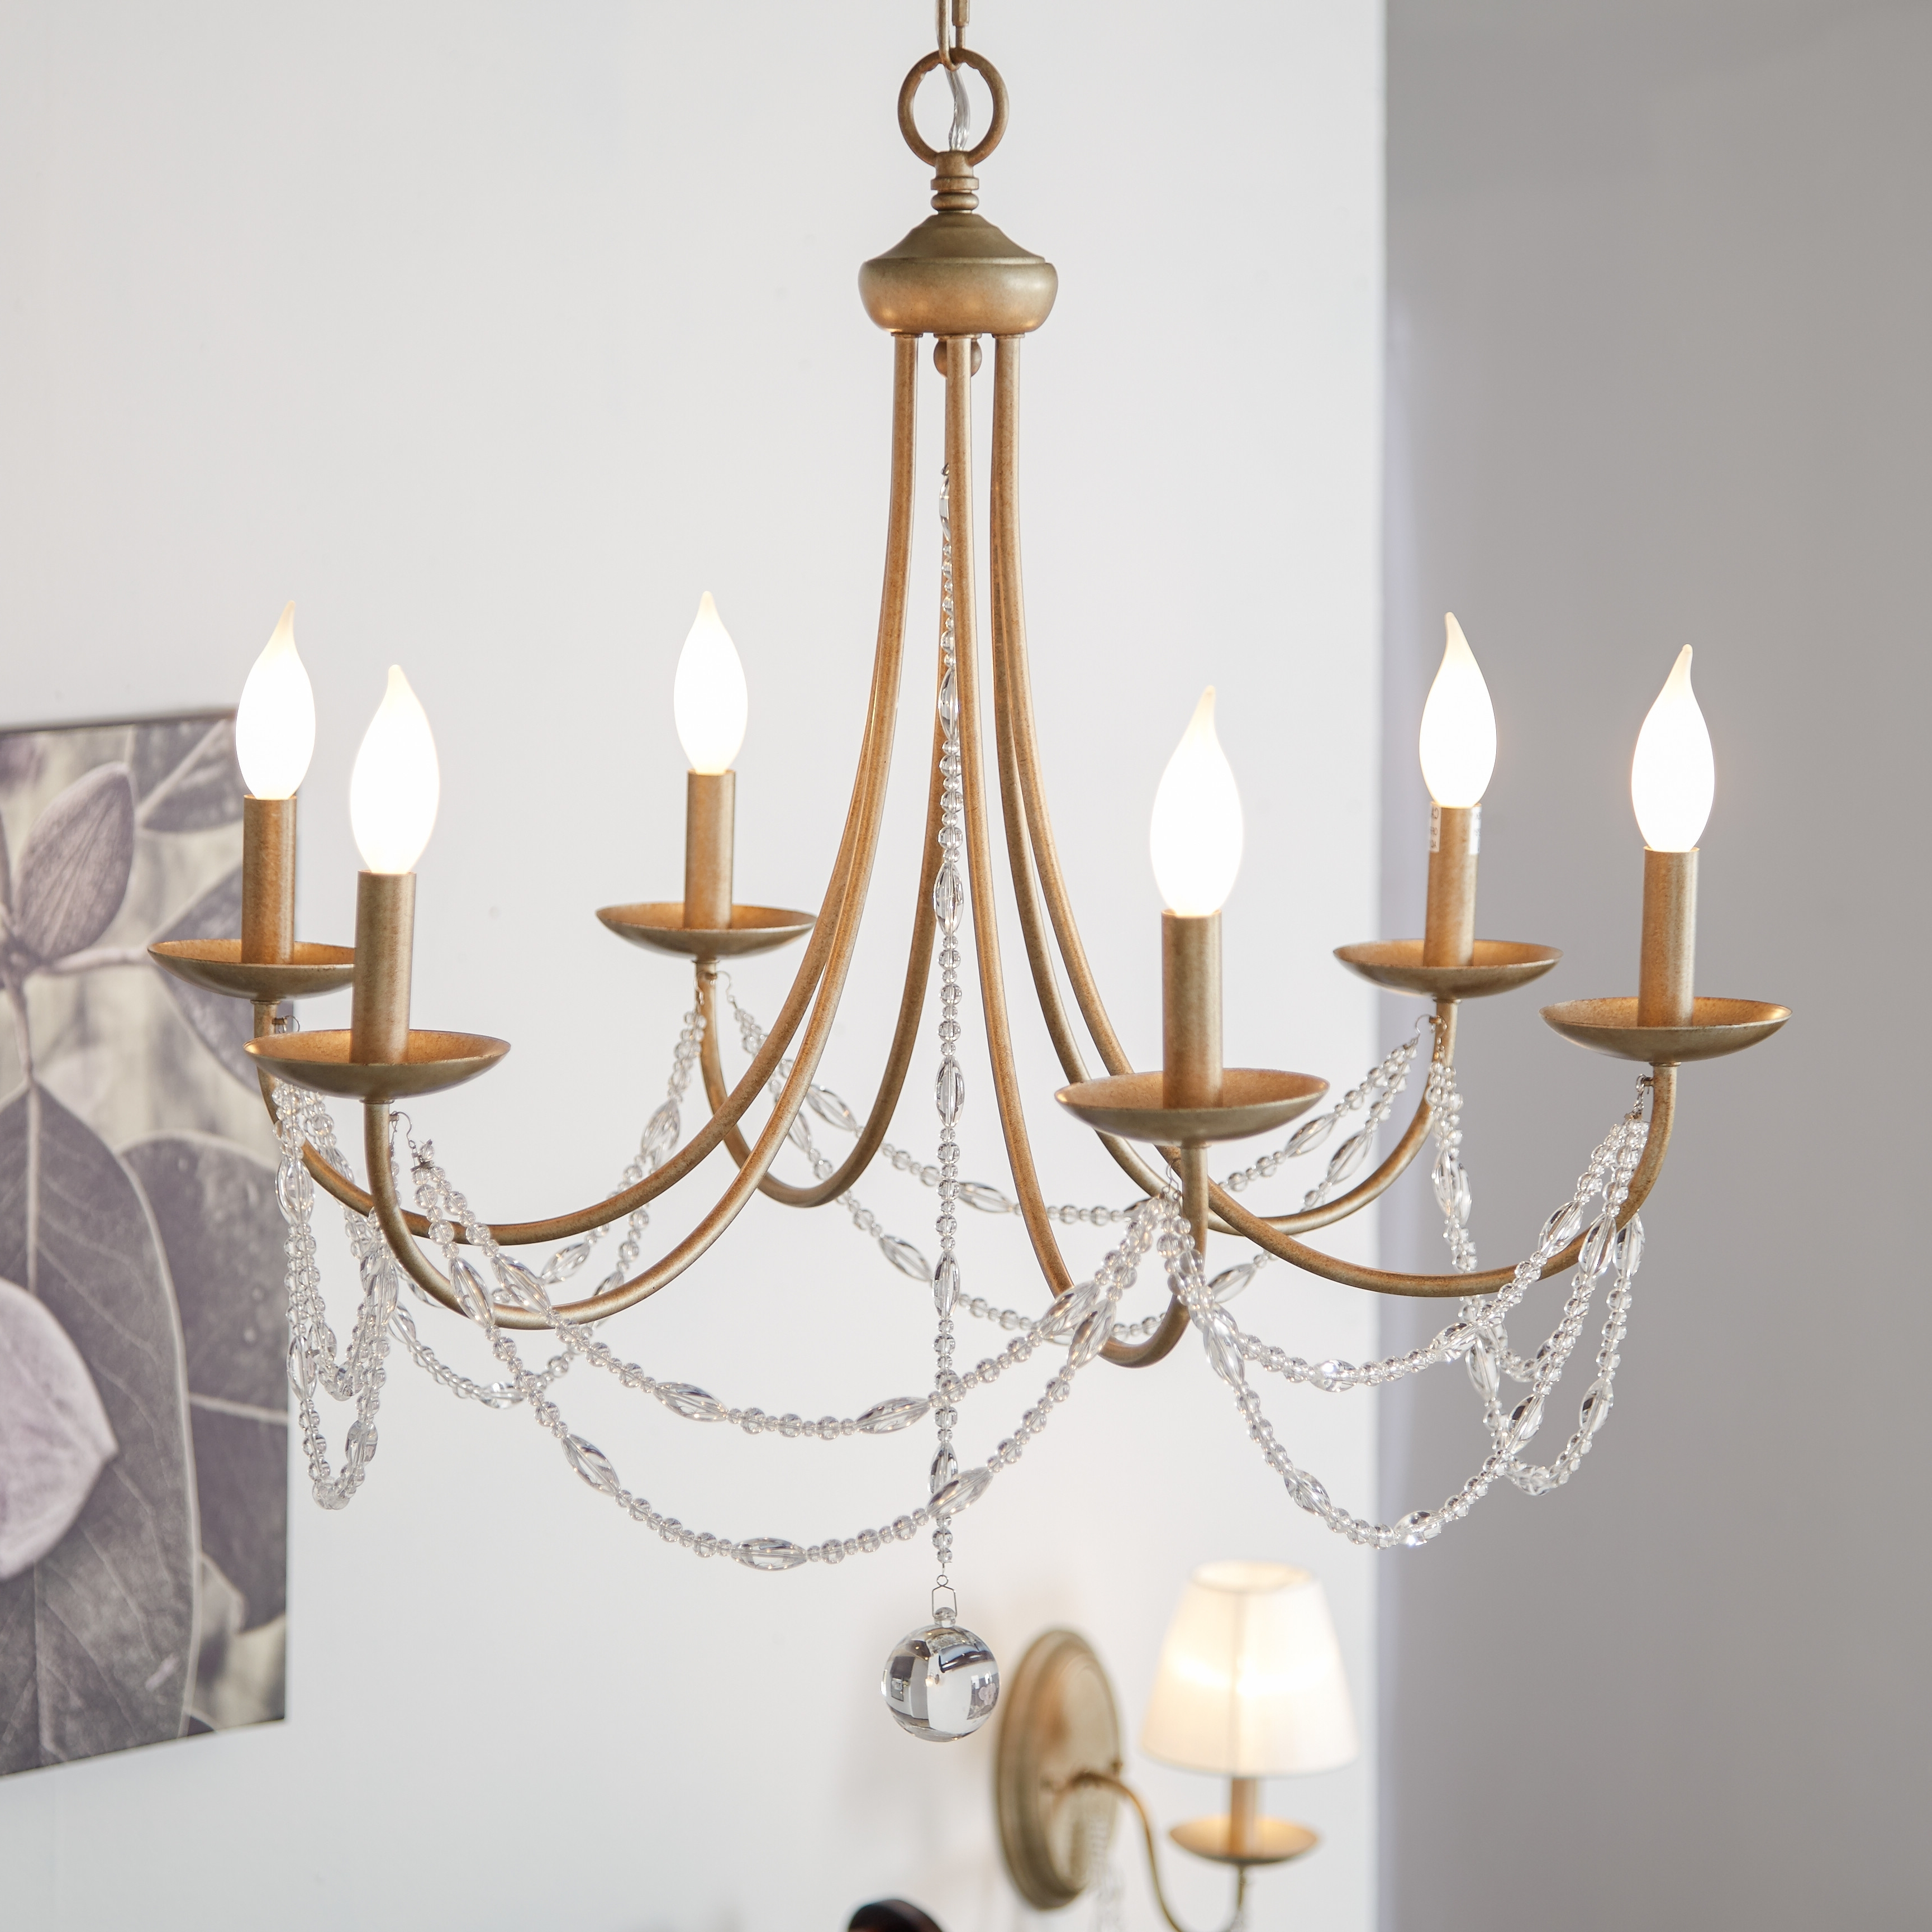 Hanging Candelabra Chandeliers In Newest Lighting: Wonderful Candle Chandelier Non Electric For Modern Lights (View 13 of 15)